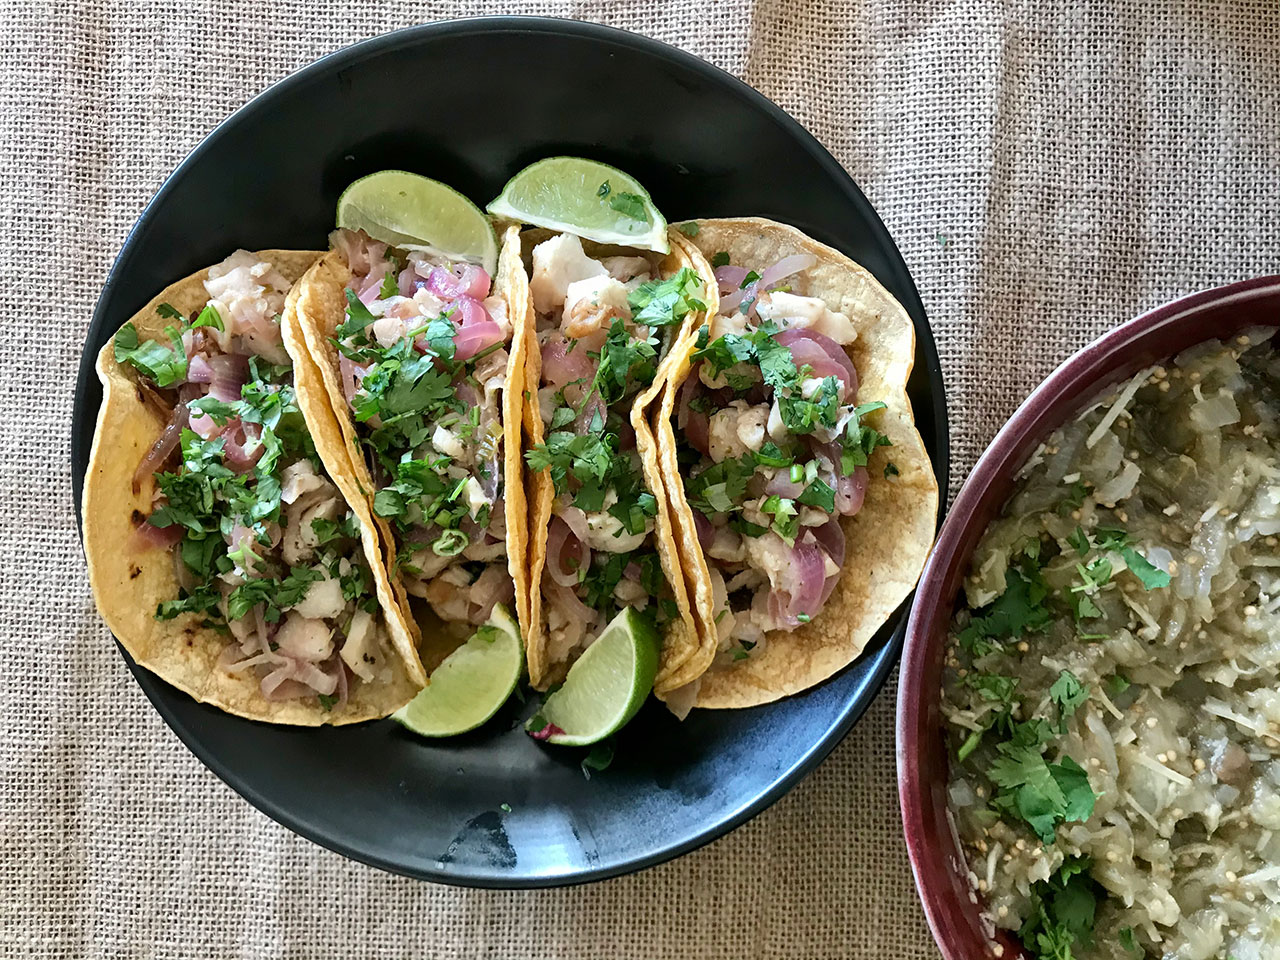 Corn Tortillas with Fish and Vegetables (Photo/Faith Kramer)